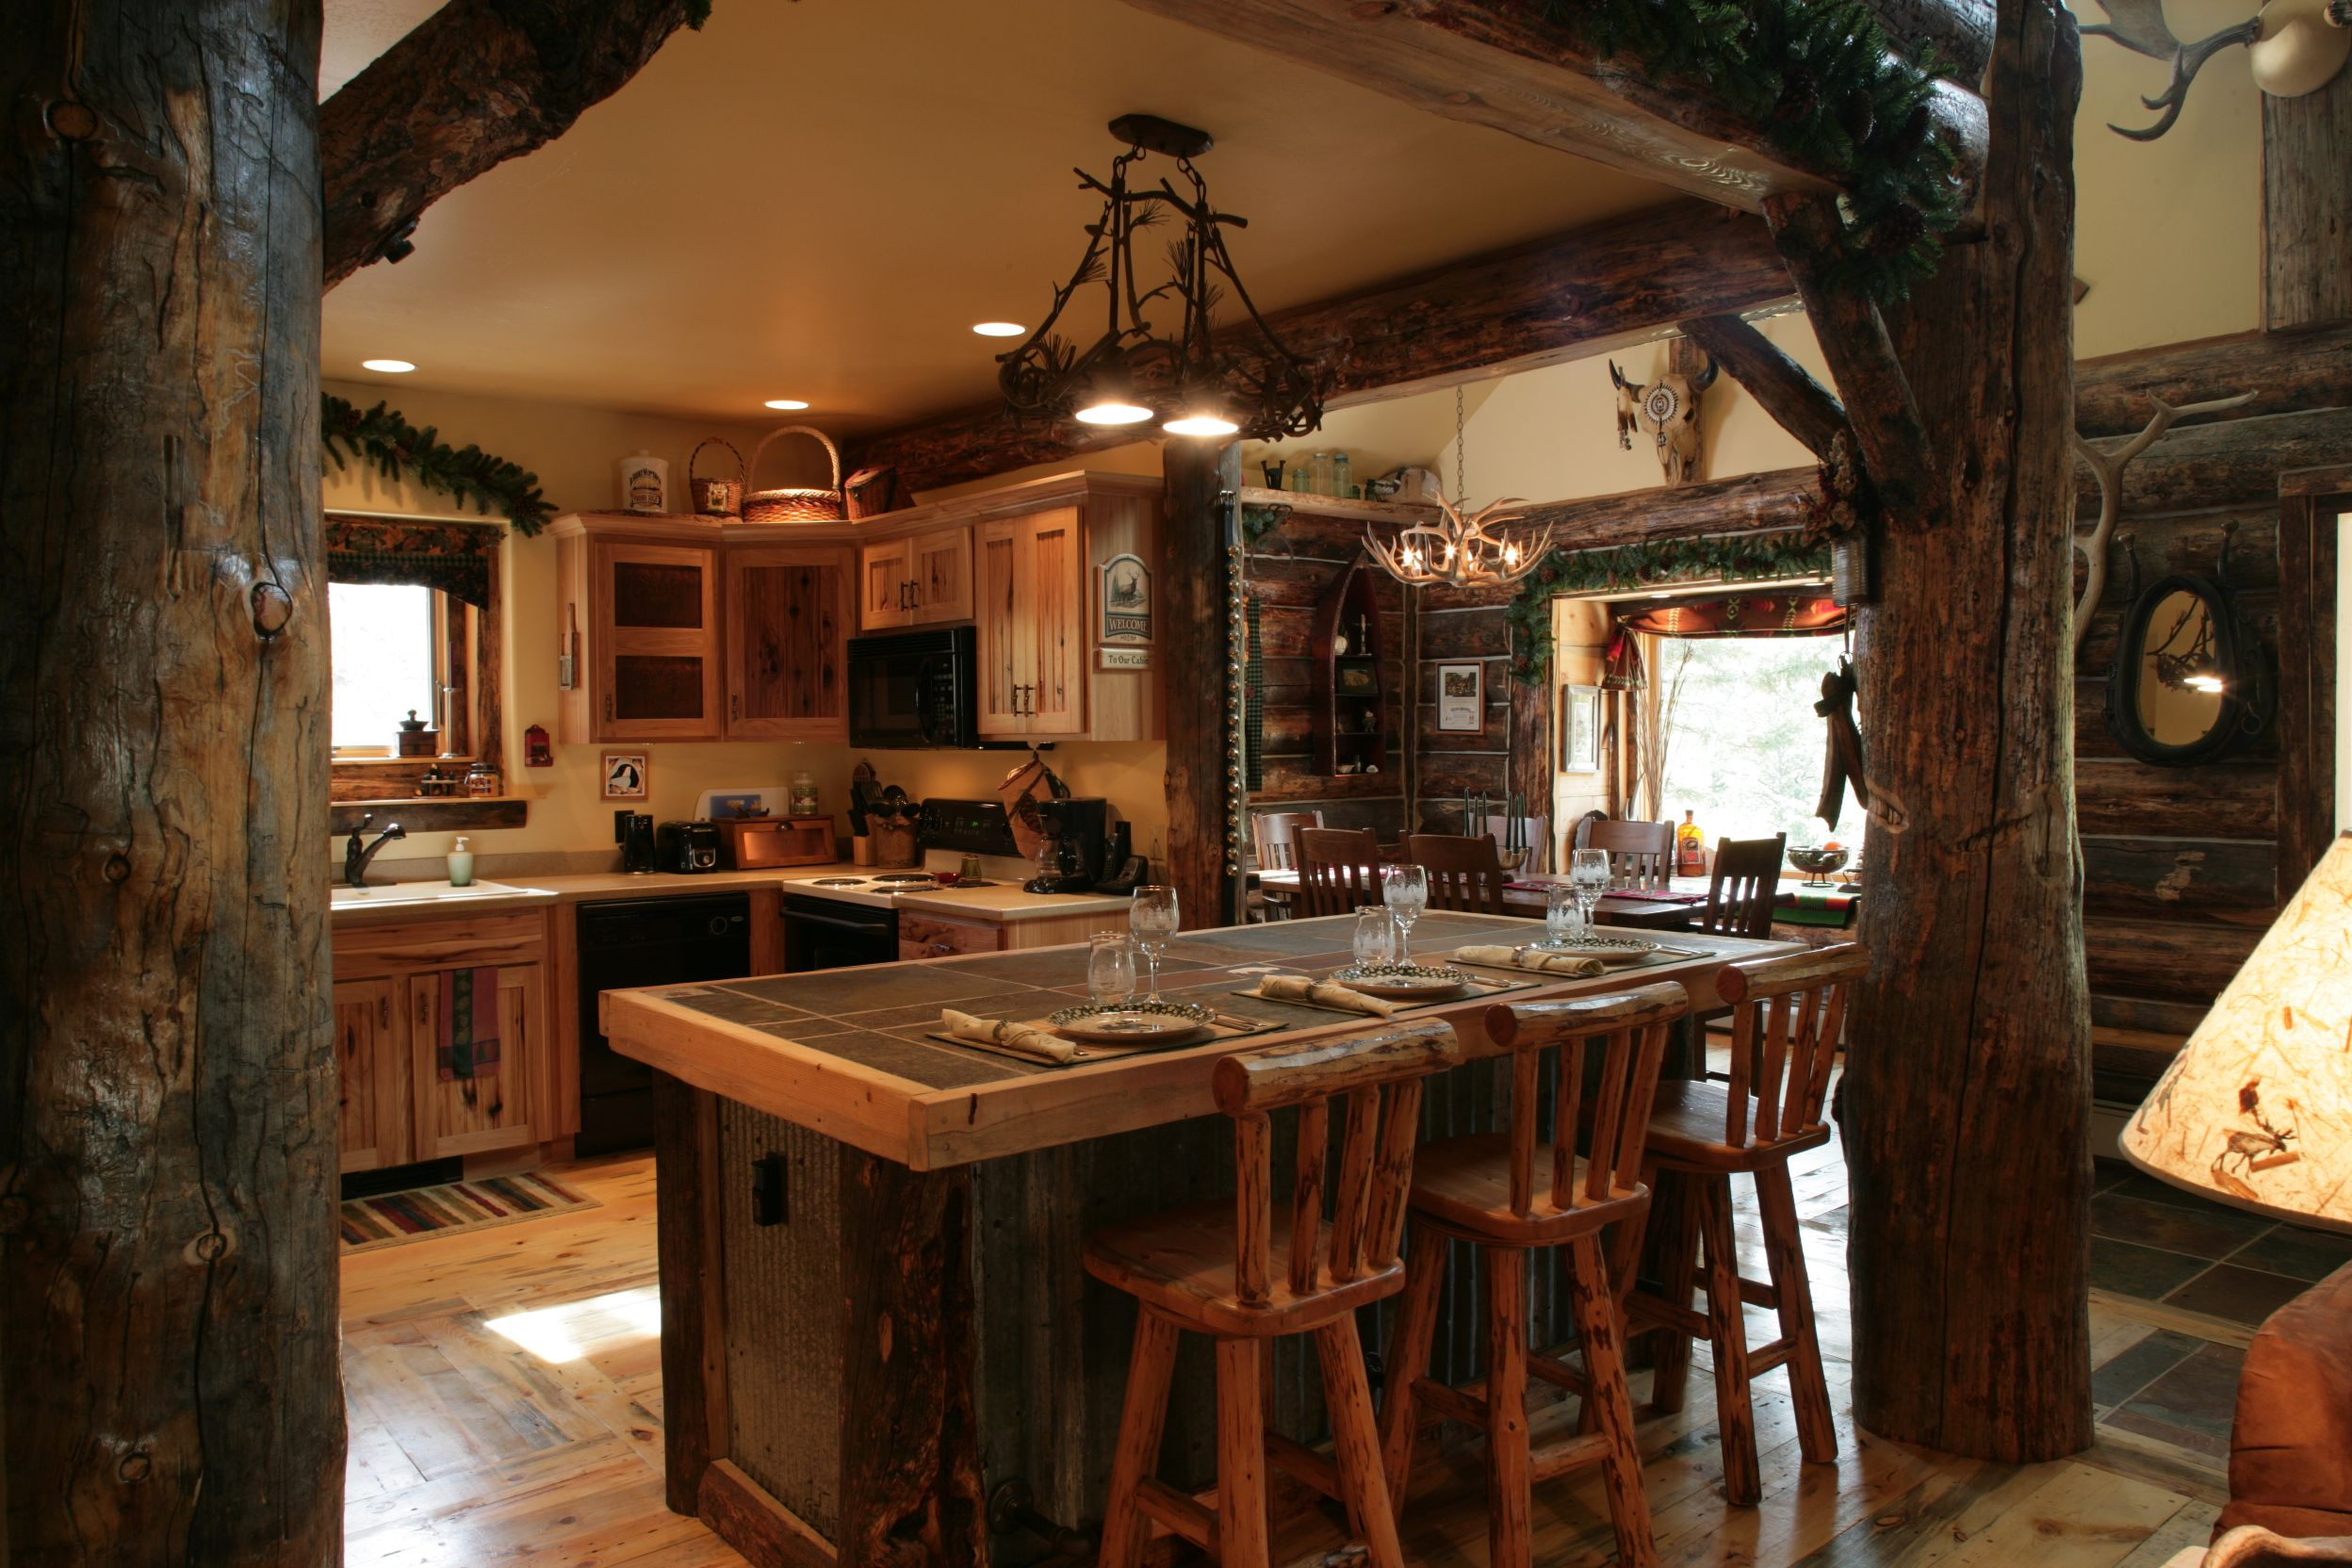 warm up your home with these home interior designs involving wood dream kitchenslog